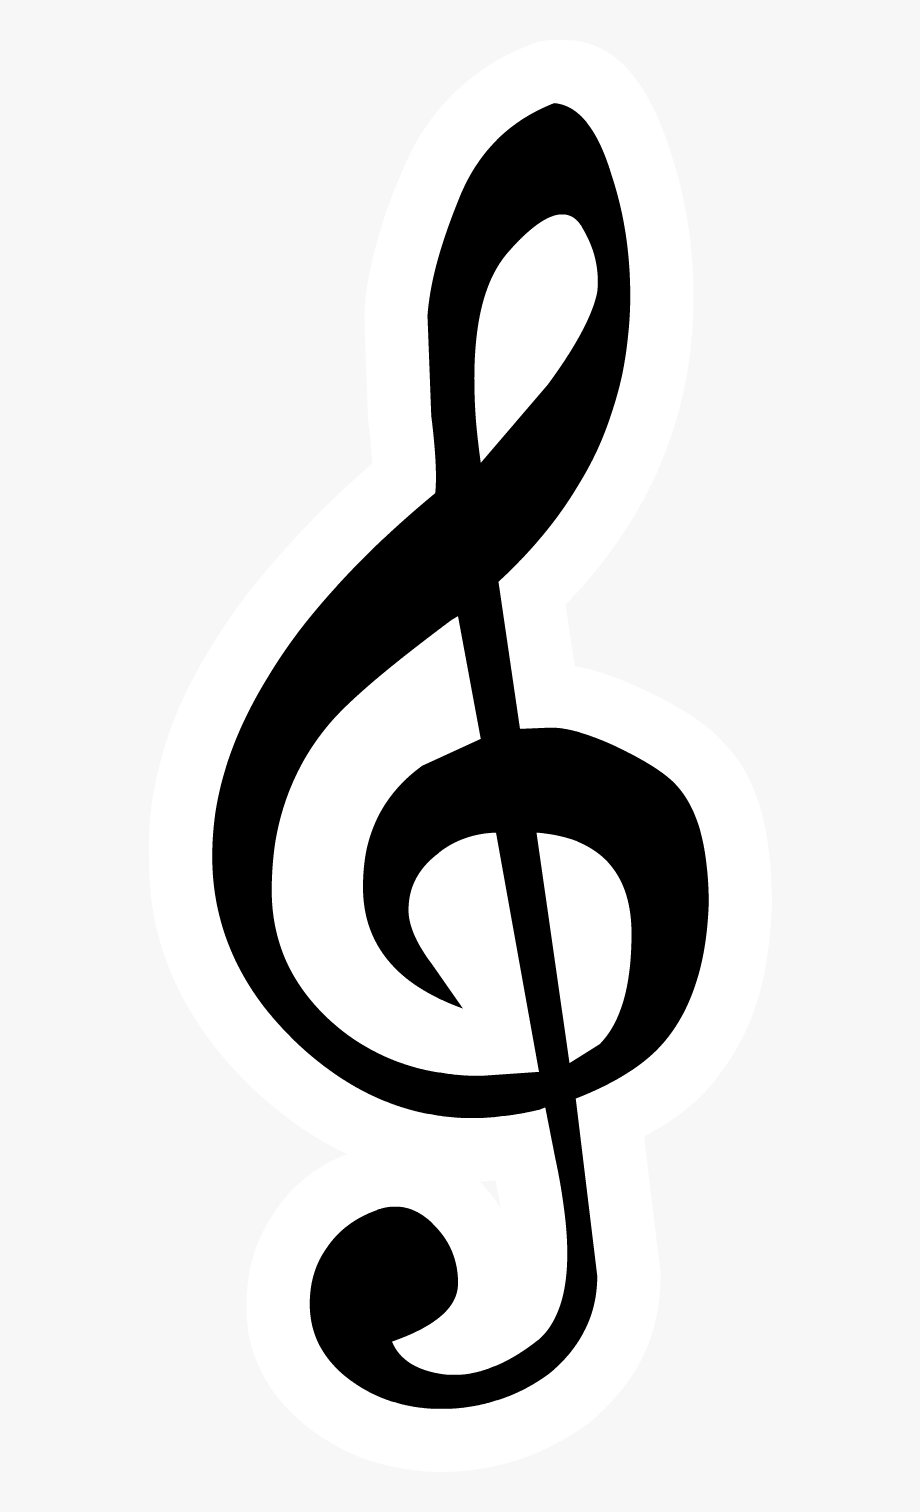 Clef Note Clipart G Clef.